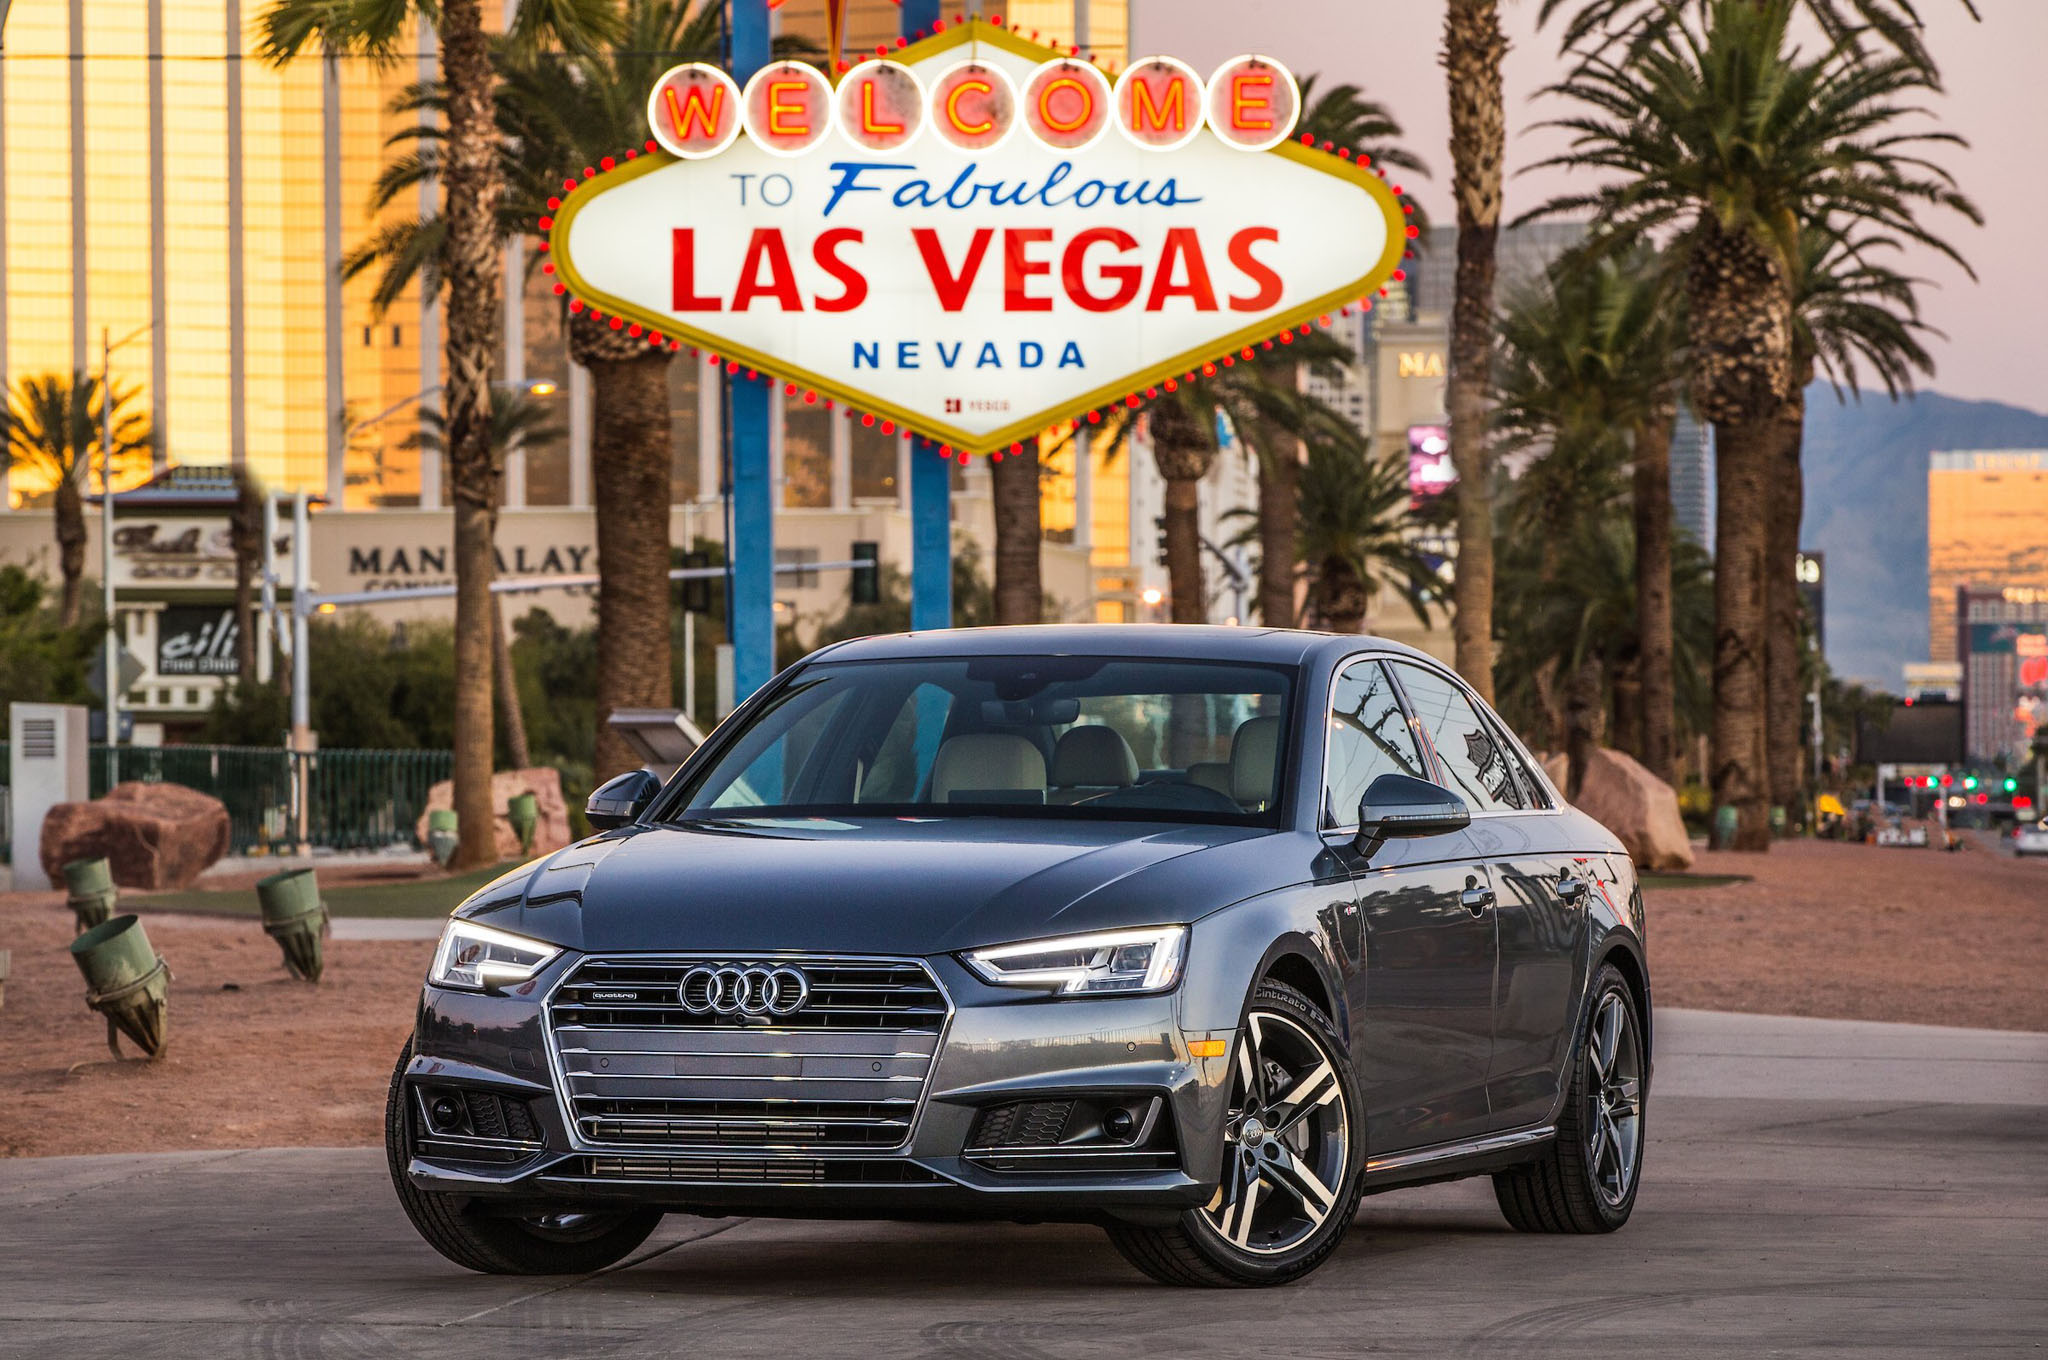 Audi Traffic Light Information Feature Launched in Las Vegas